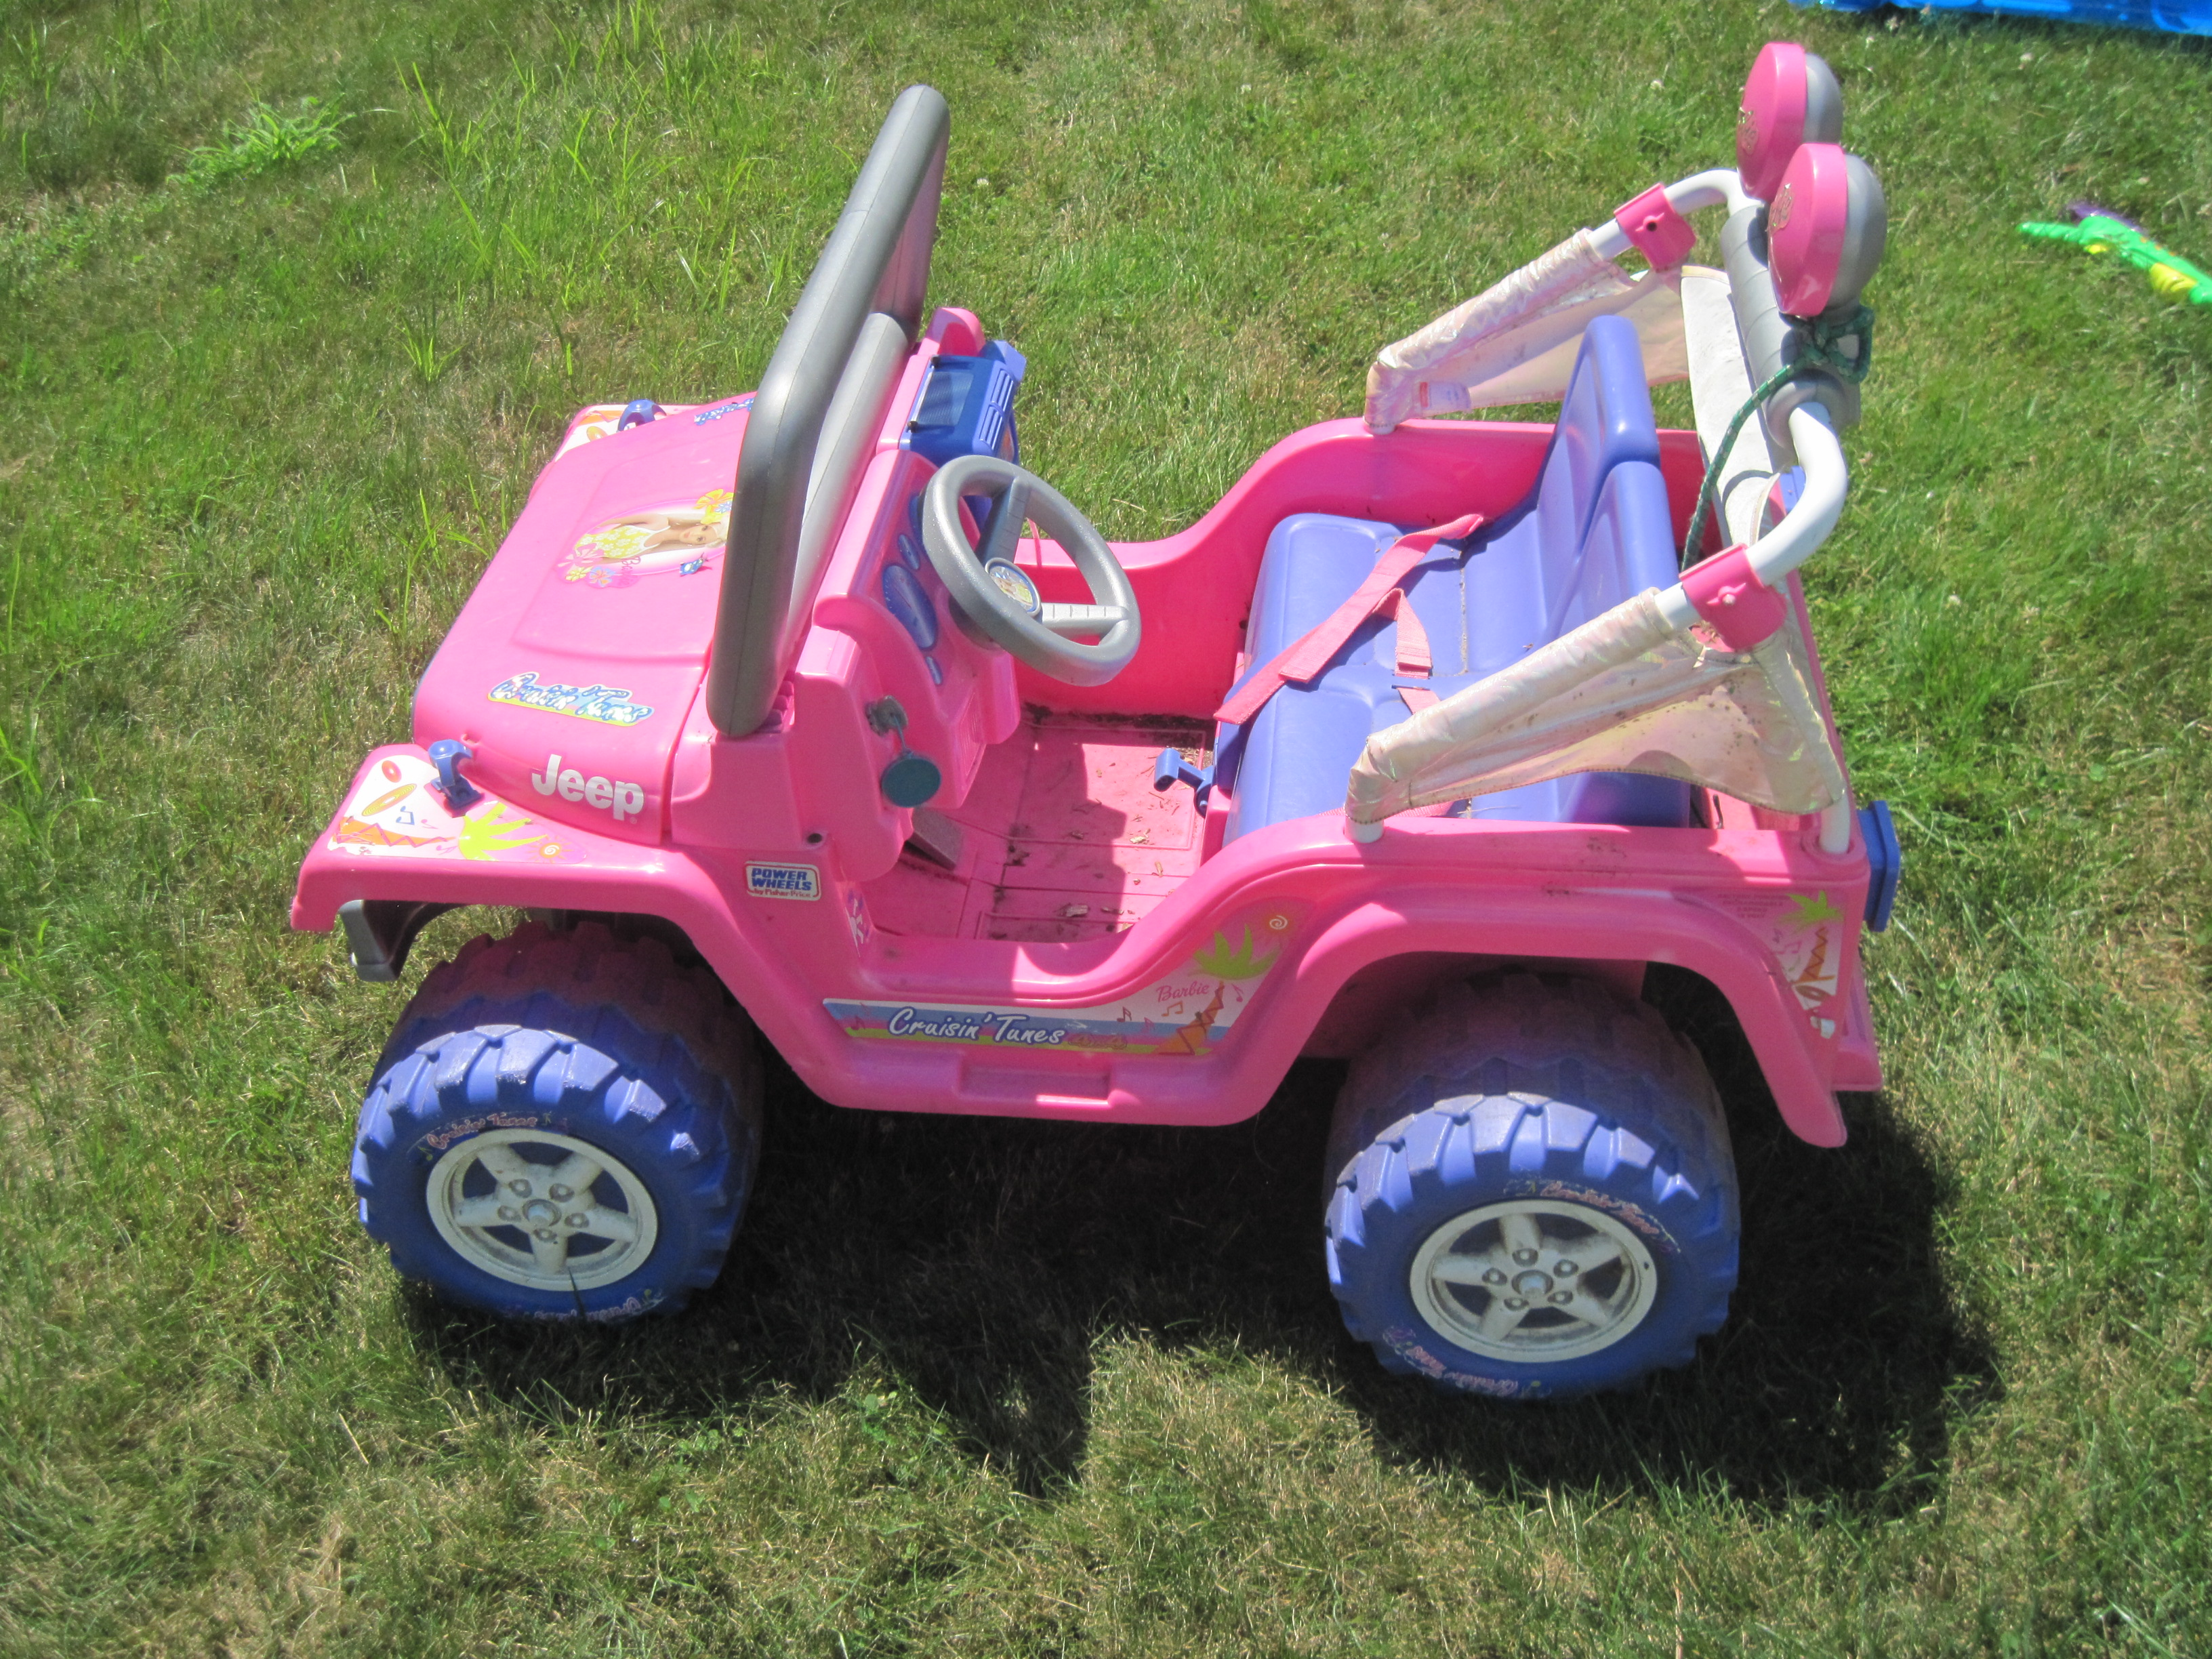 Power wheels jeep robot